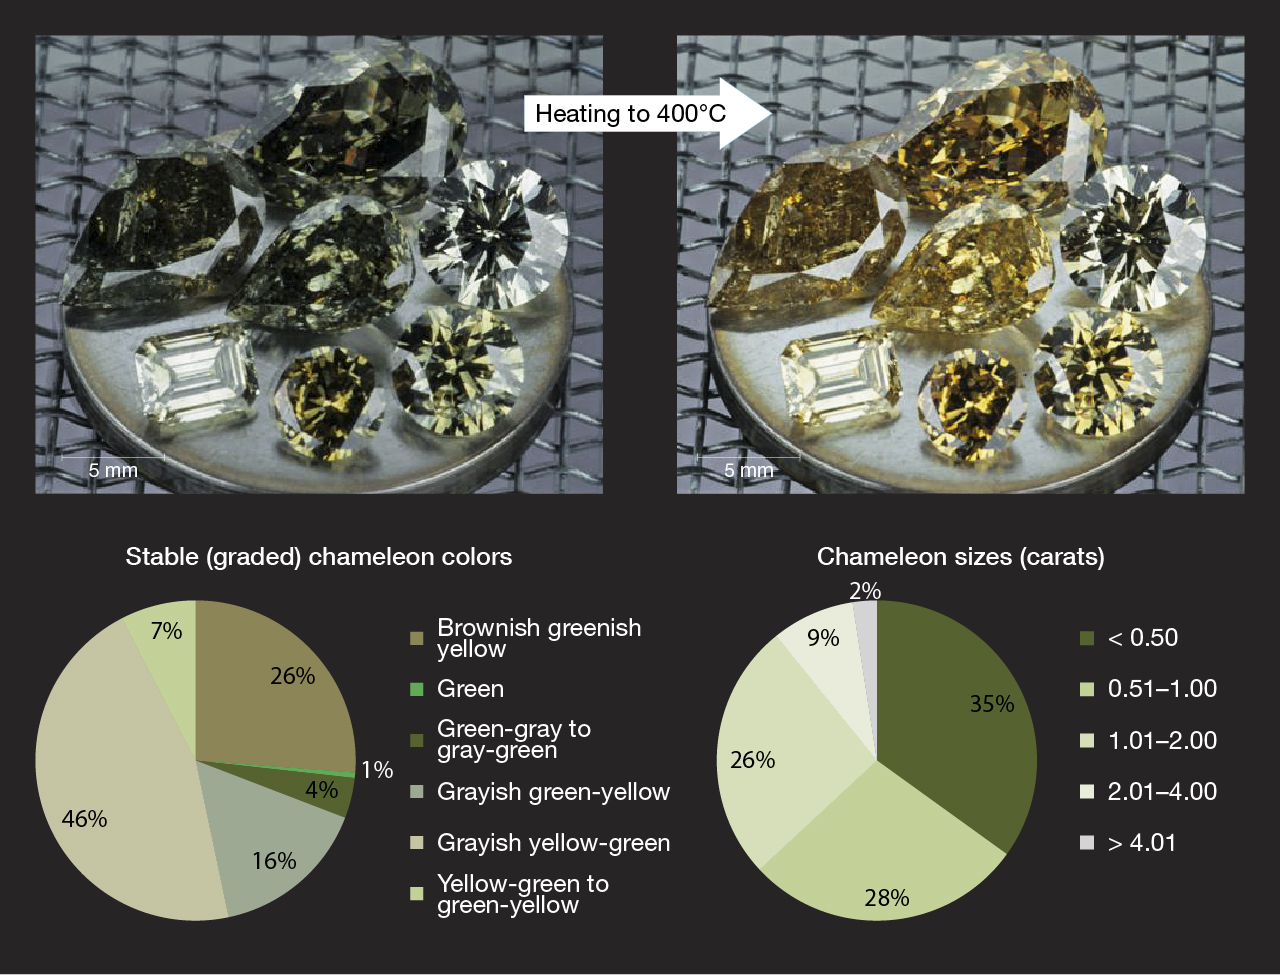 Chameleon diamonds change from their natural greenish color to yellow or orange when heated or kept in the dark.